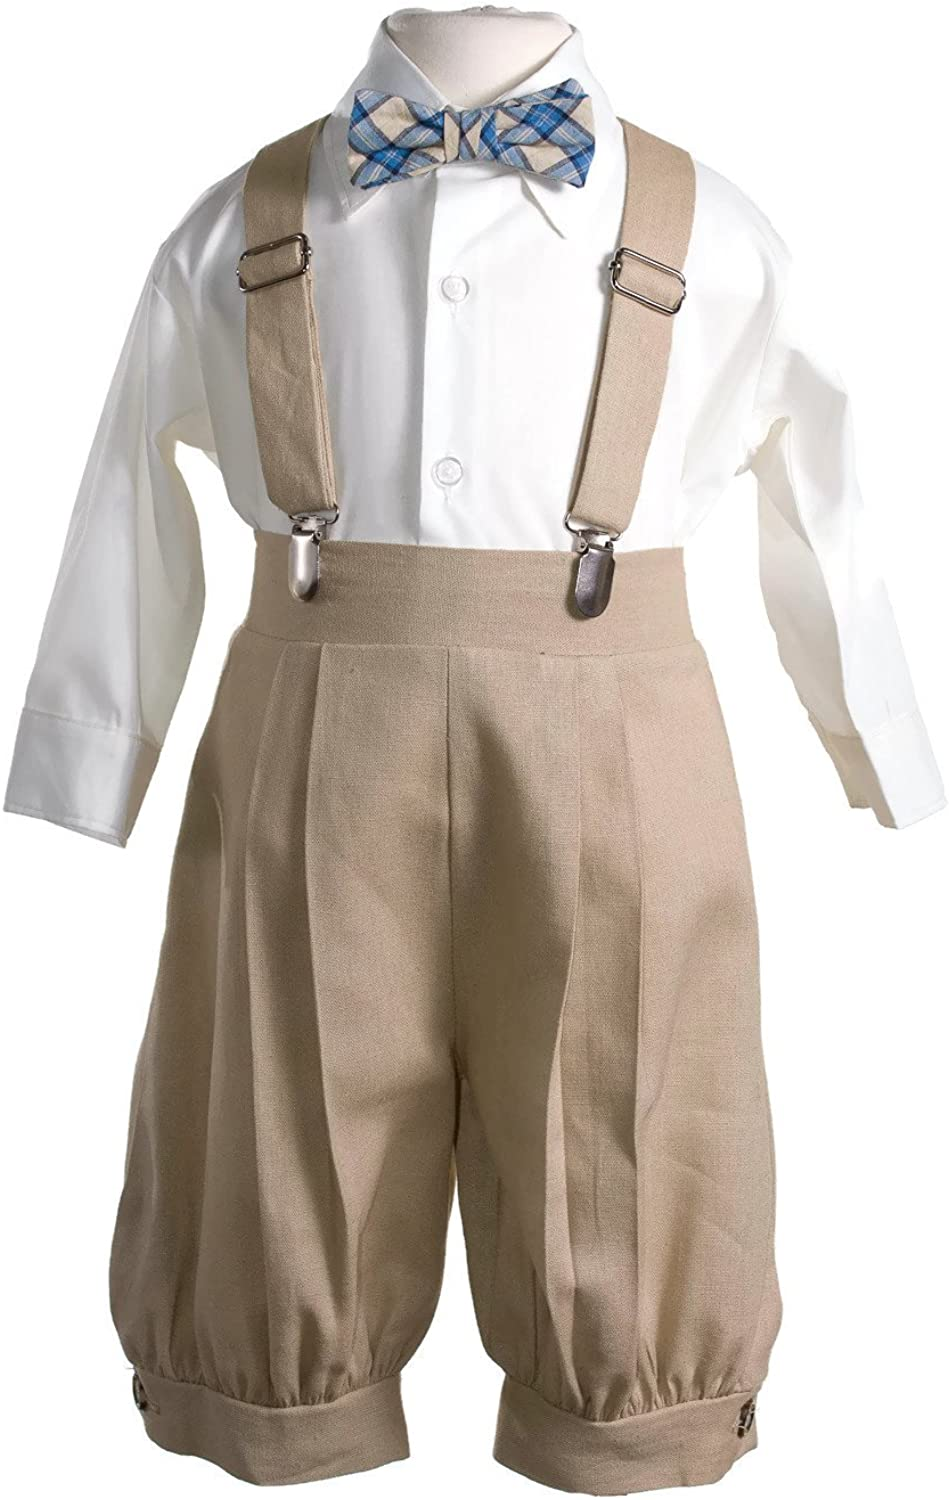 New Boys Brown Beige Ivory Knickers Vintage Suit Set Outfit Easter Christmas